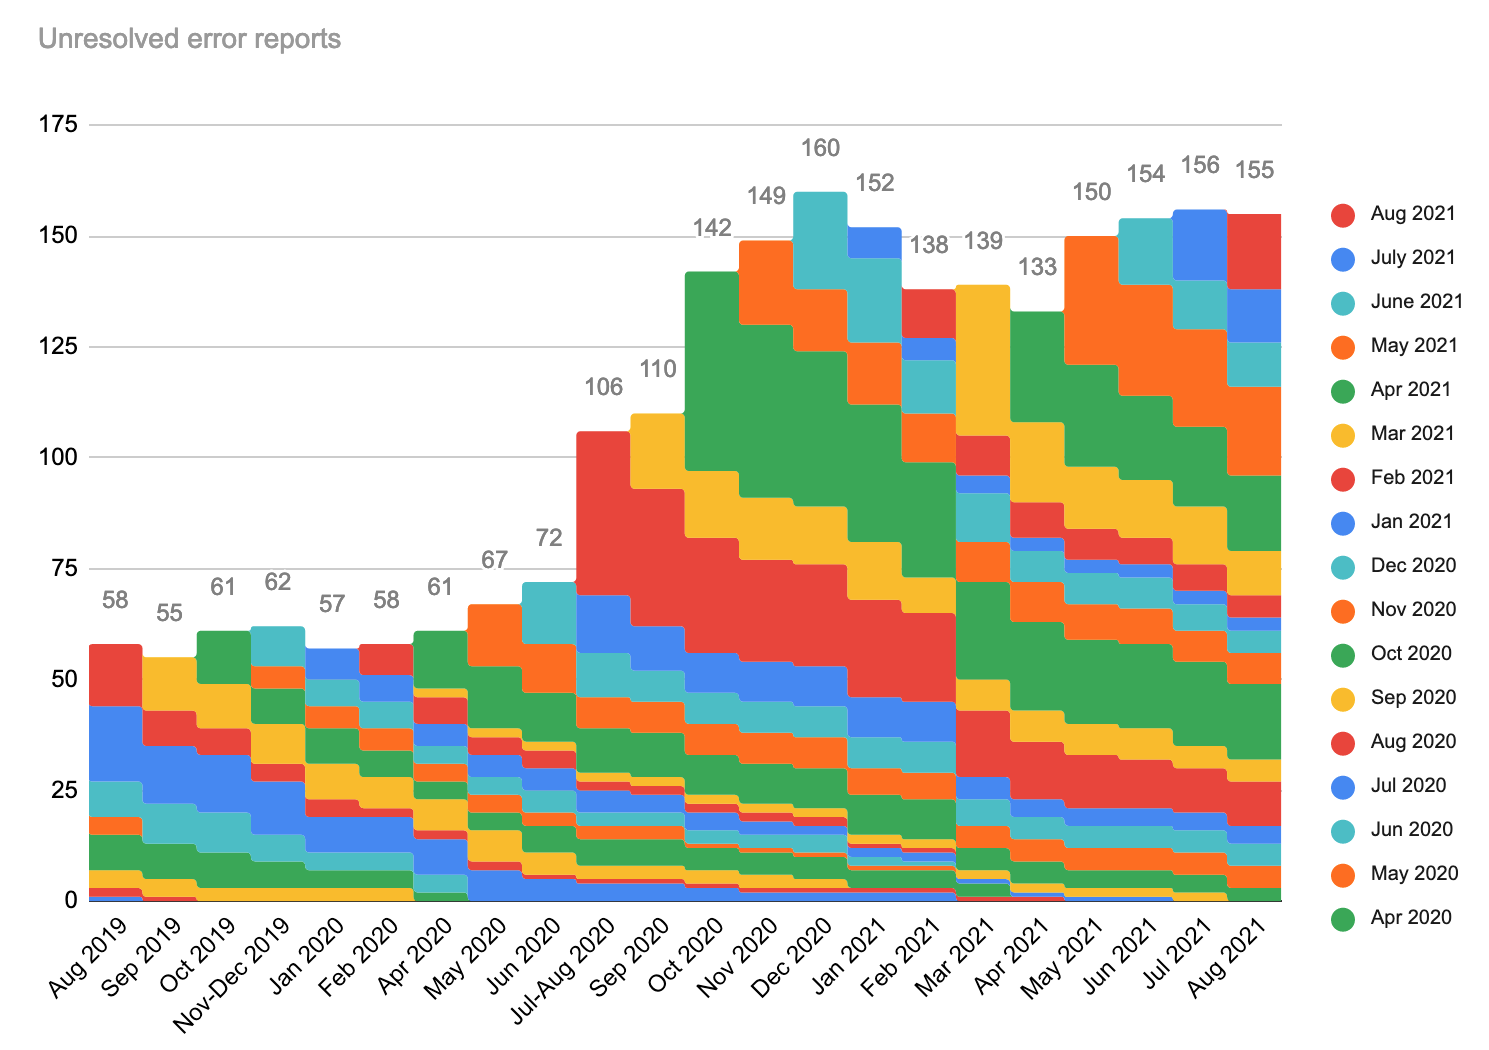 Unresolved error reports, stacked by month